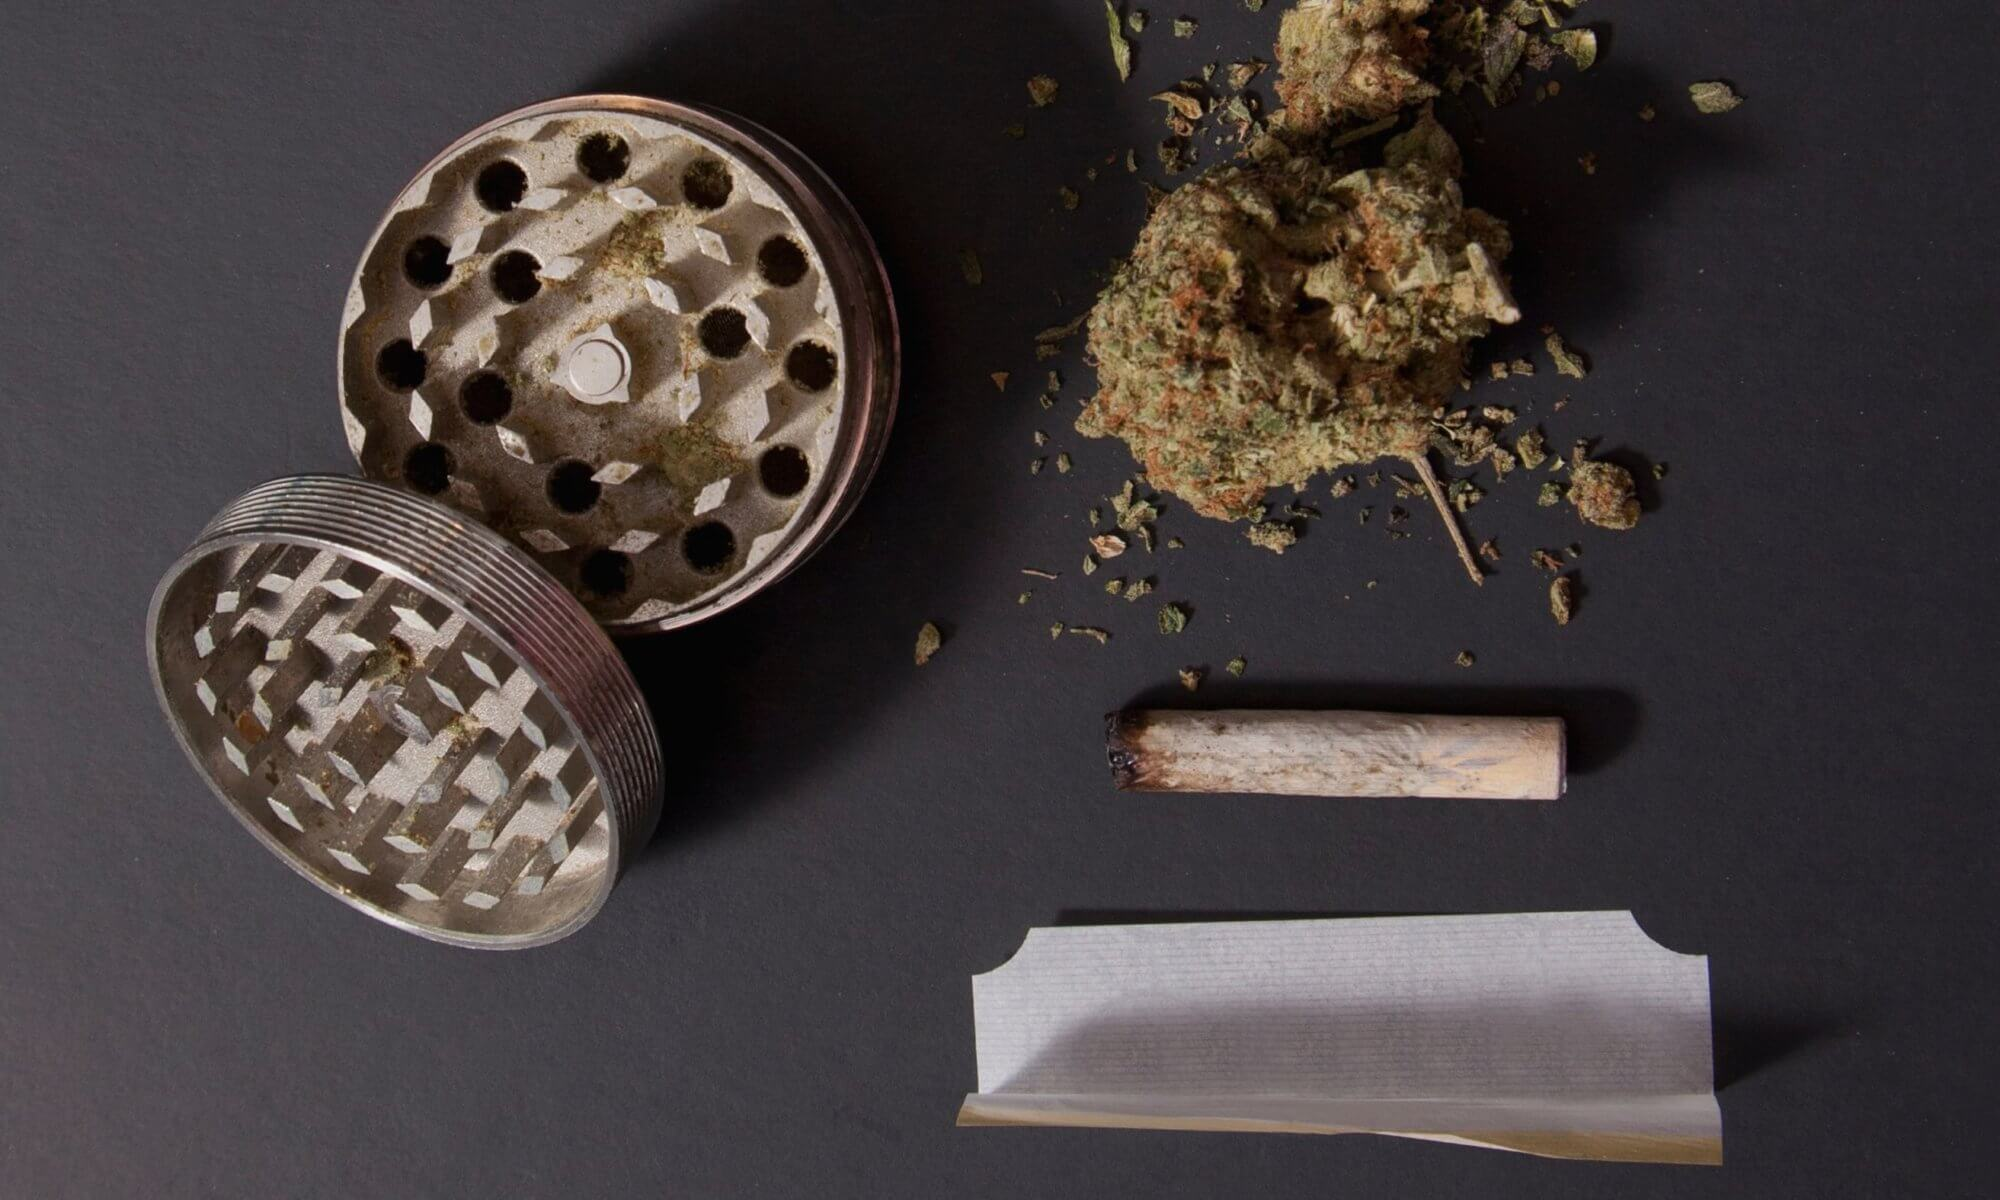 Where Can I Buy Weed Grinder?